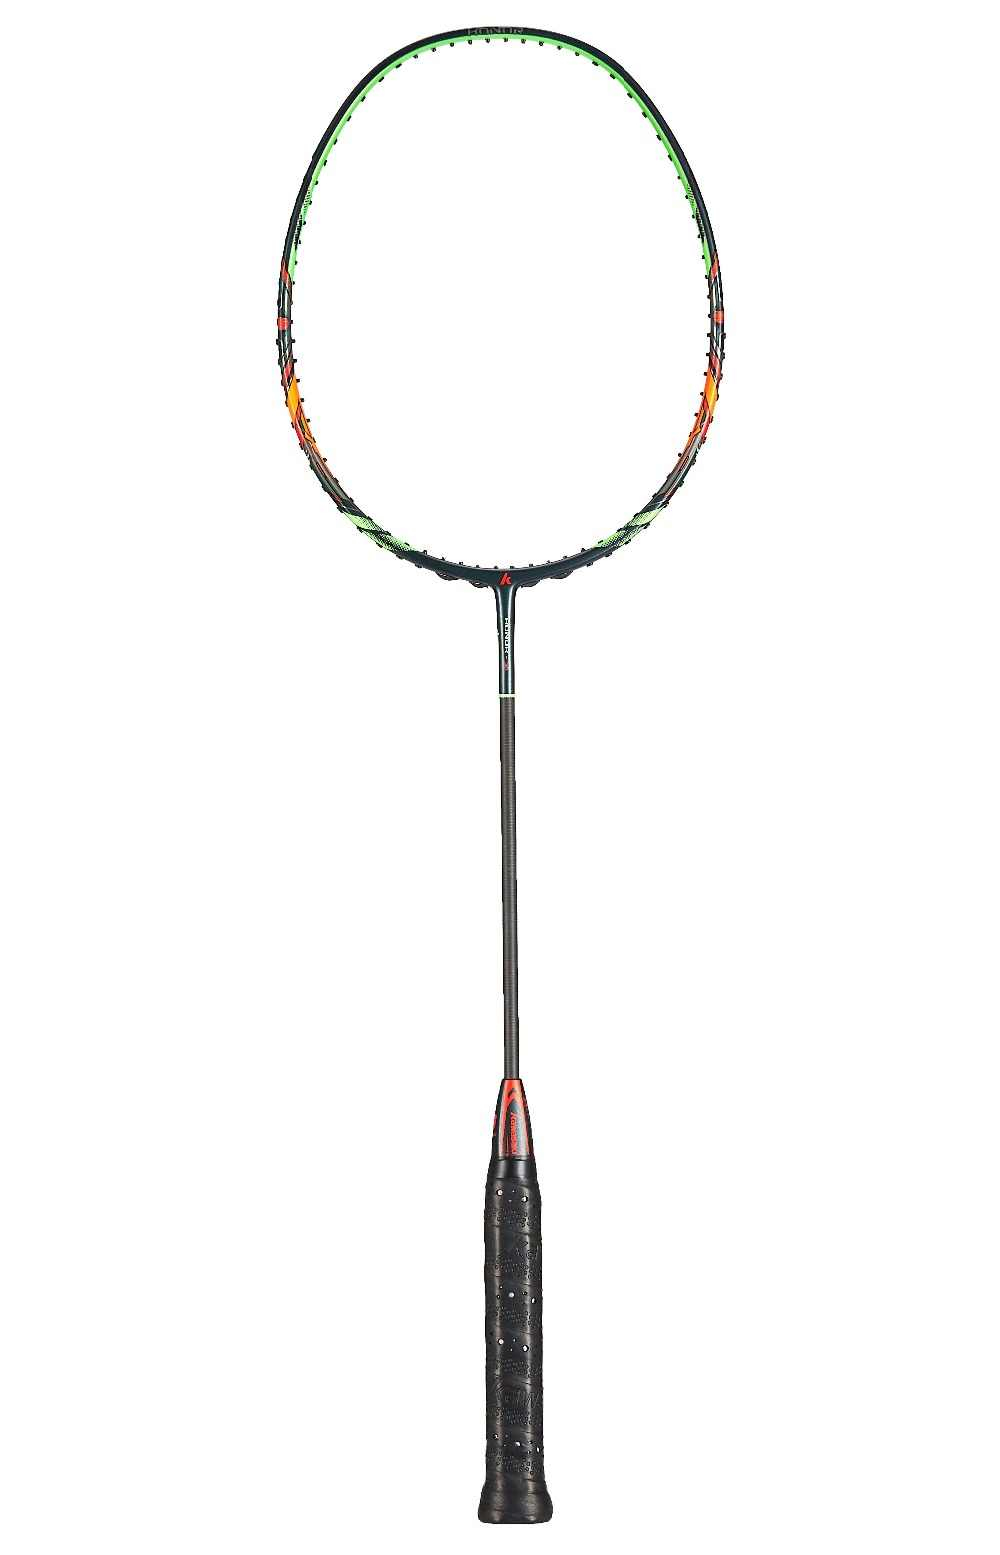 2019 Kawasaki 4U Attack Type Badminton Rackets HONOR S6 30T Carbon Fiber Box Frame Racquet For Amateur Intermediate Players